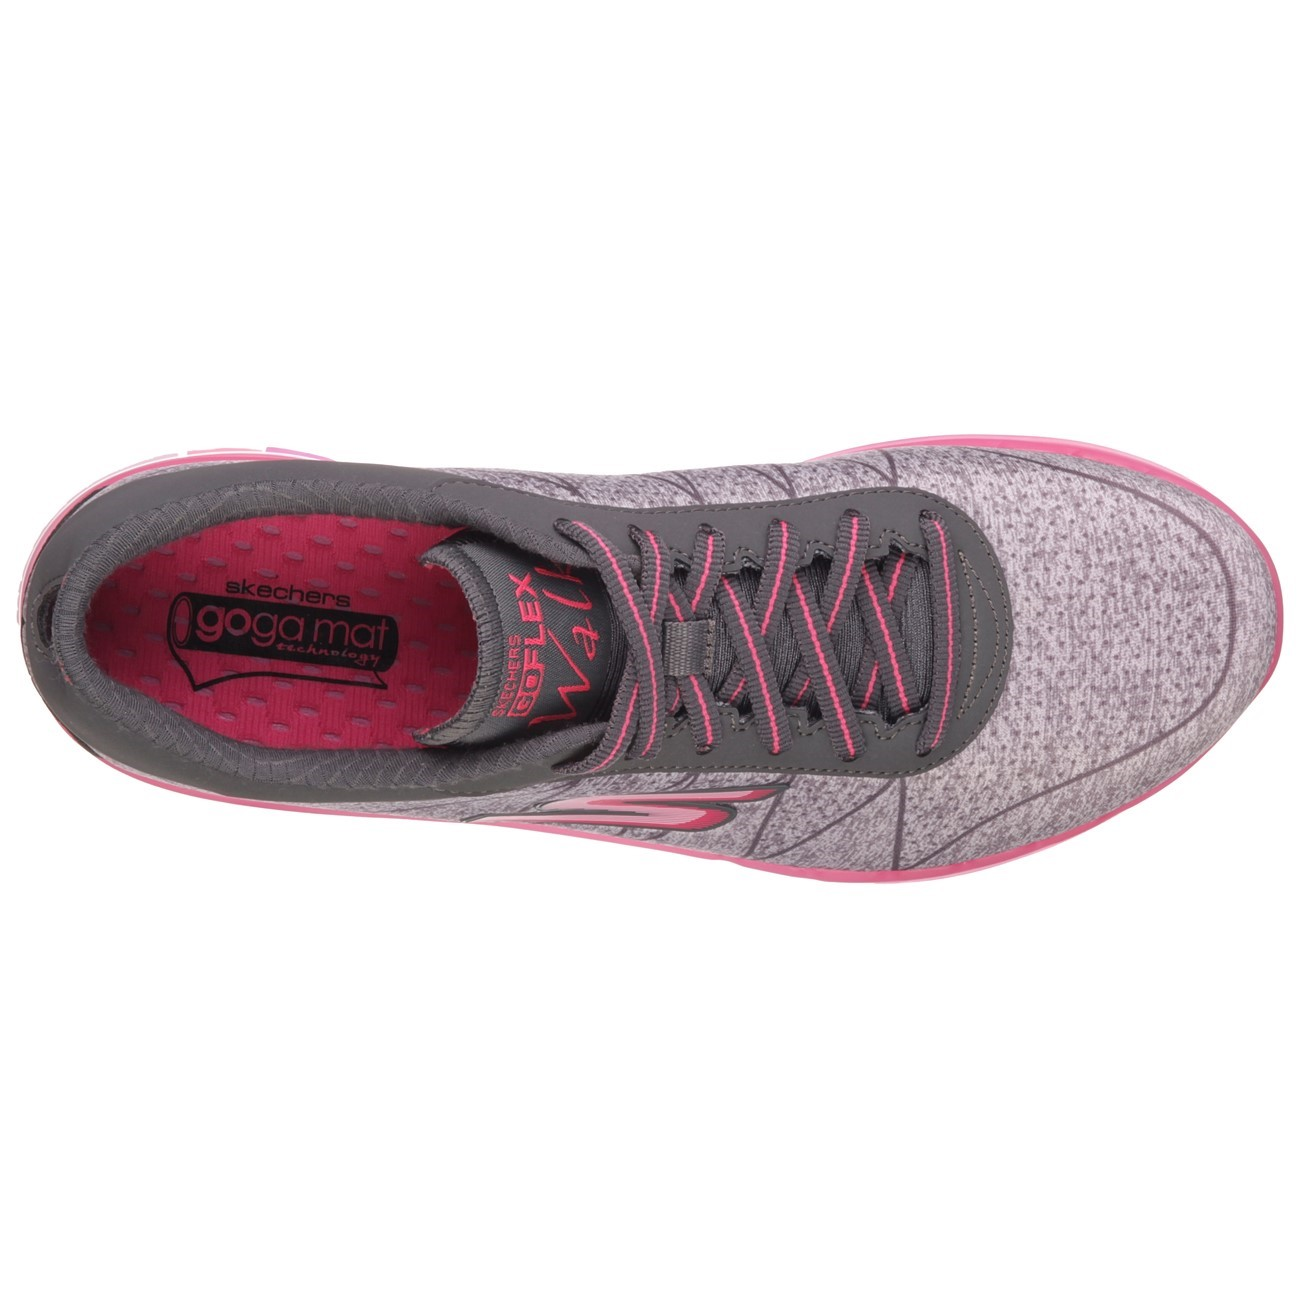 334bc8627d67 Skechers Go Flex Walk Ability - Womens Walking Shoes - Grey Hot Pink ...